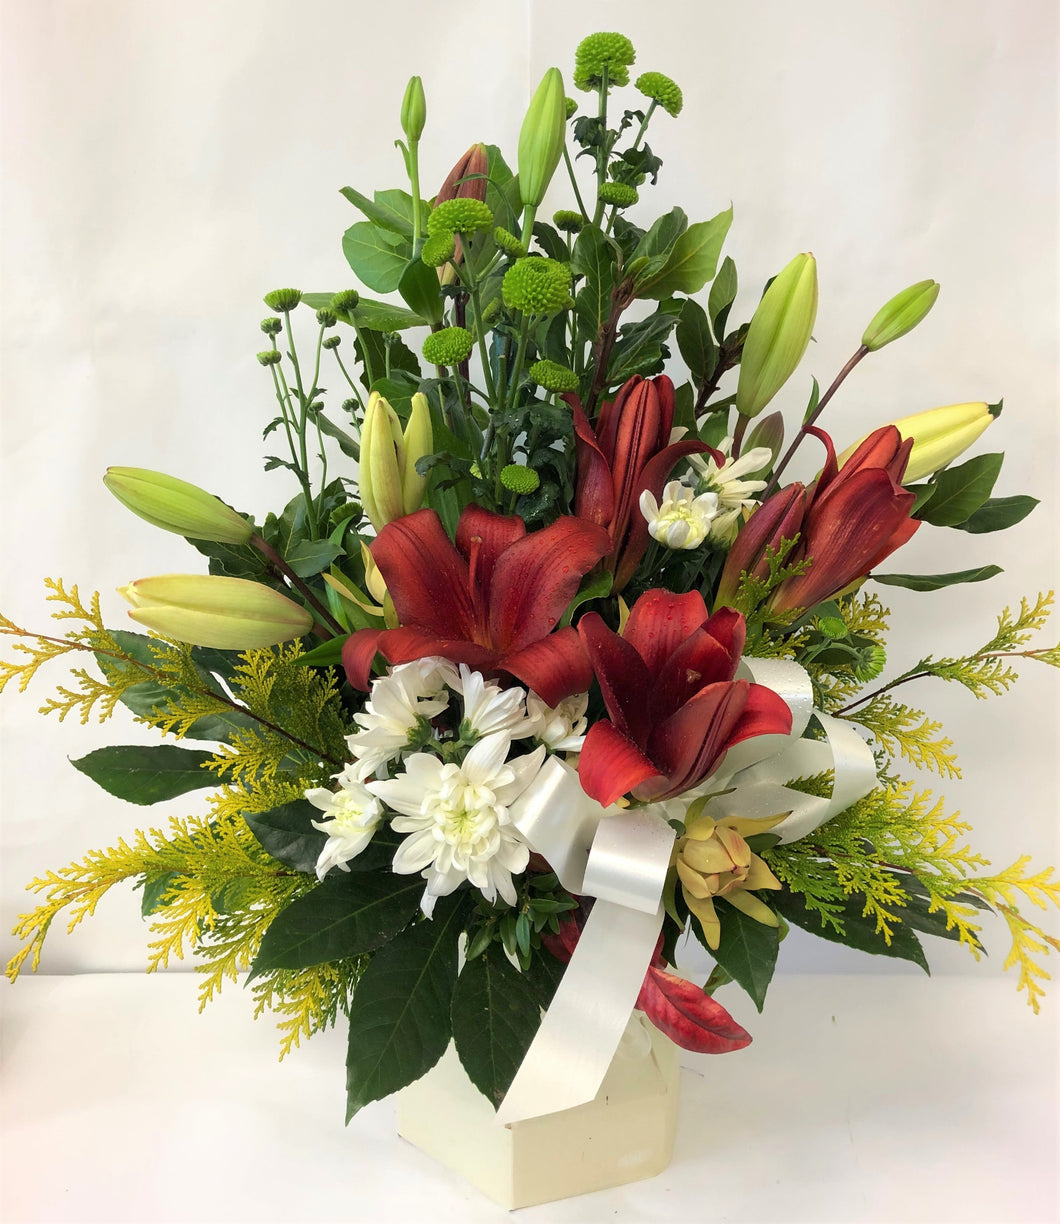 Water box, Hospital flowers, Get well, Birthday, Anniversary, flowers, lillies